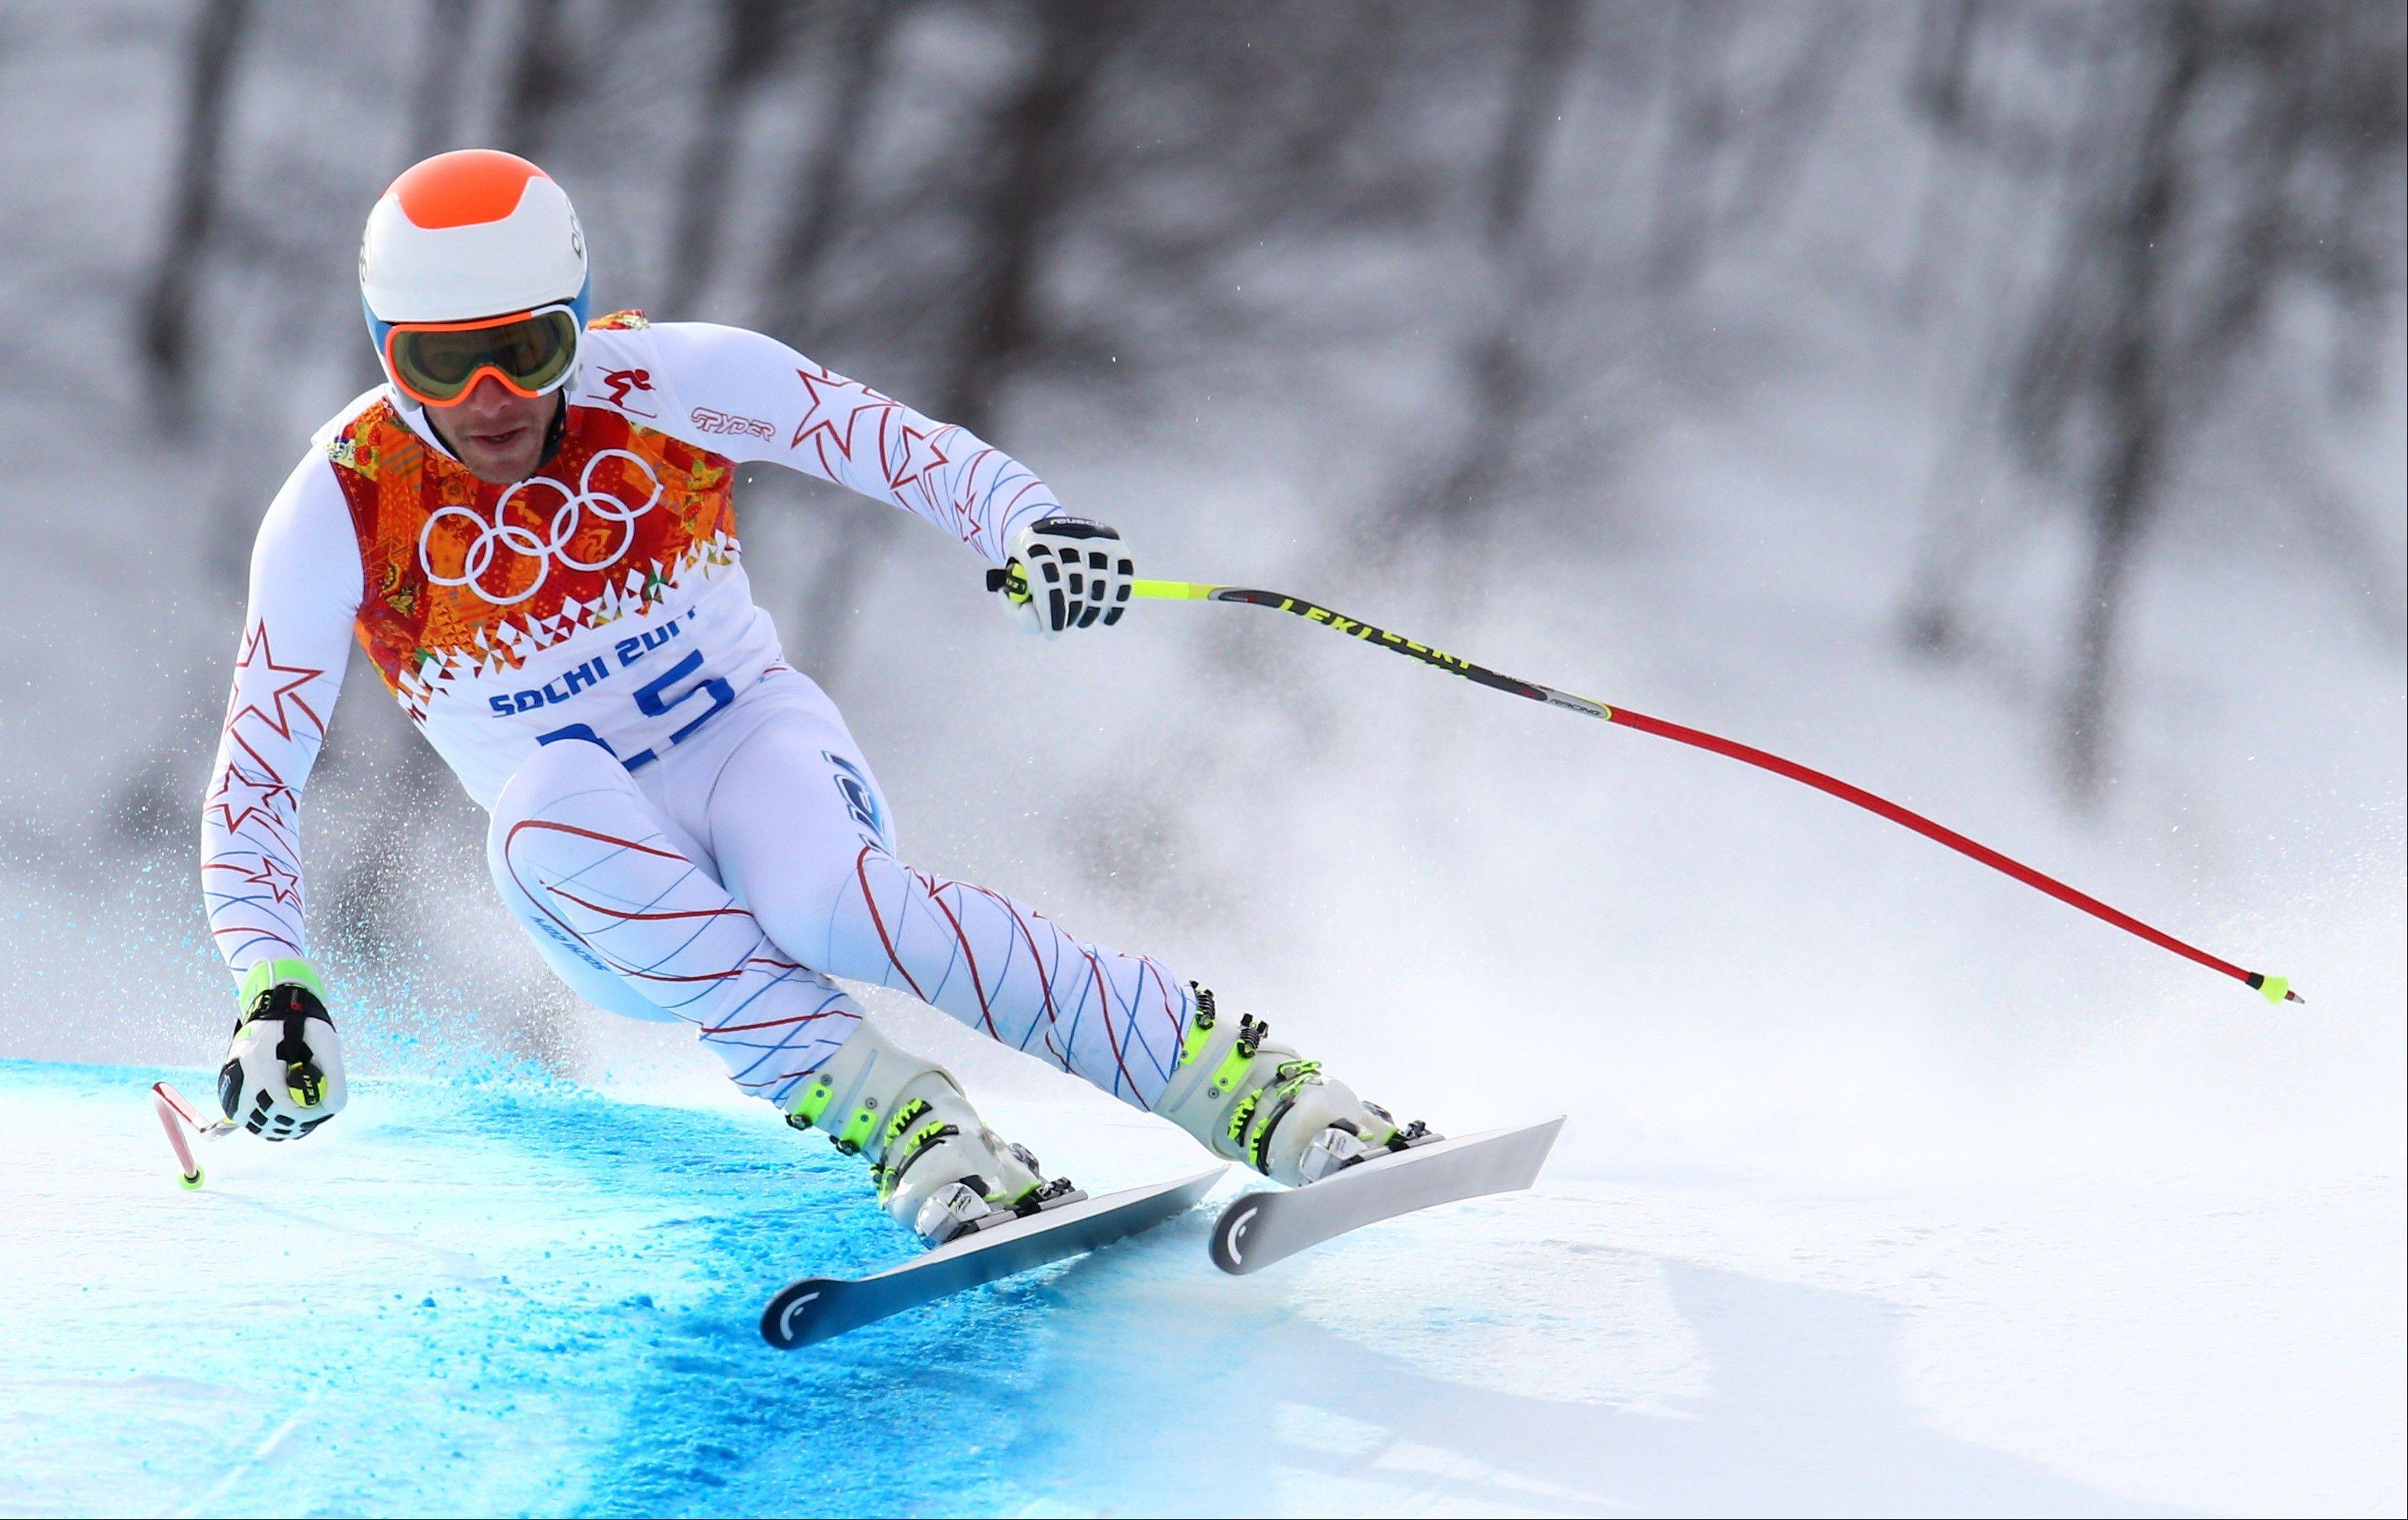 United States' Bode Miller makes a turn during the men's downhill at the Sochi 2014 Winter Olympics, Sunday, Feb. 9, 2014, in Krasnaya Polyana, Russia.